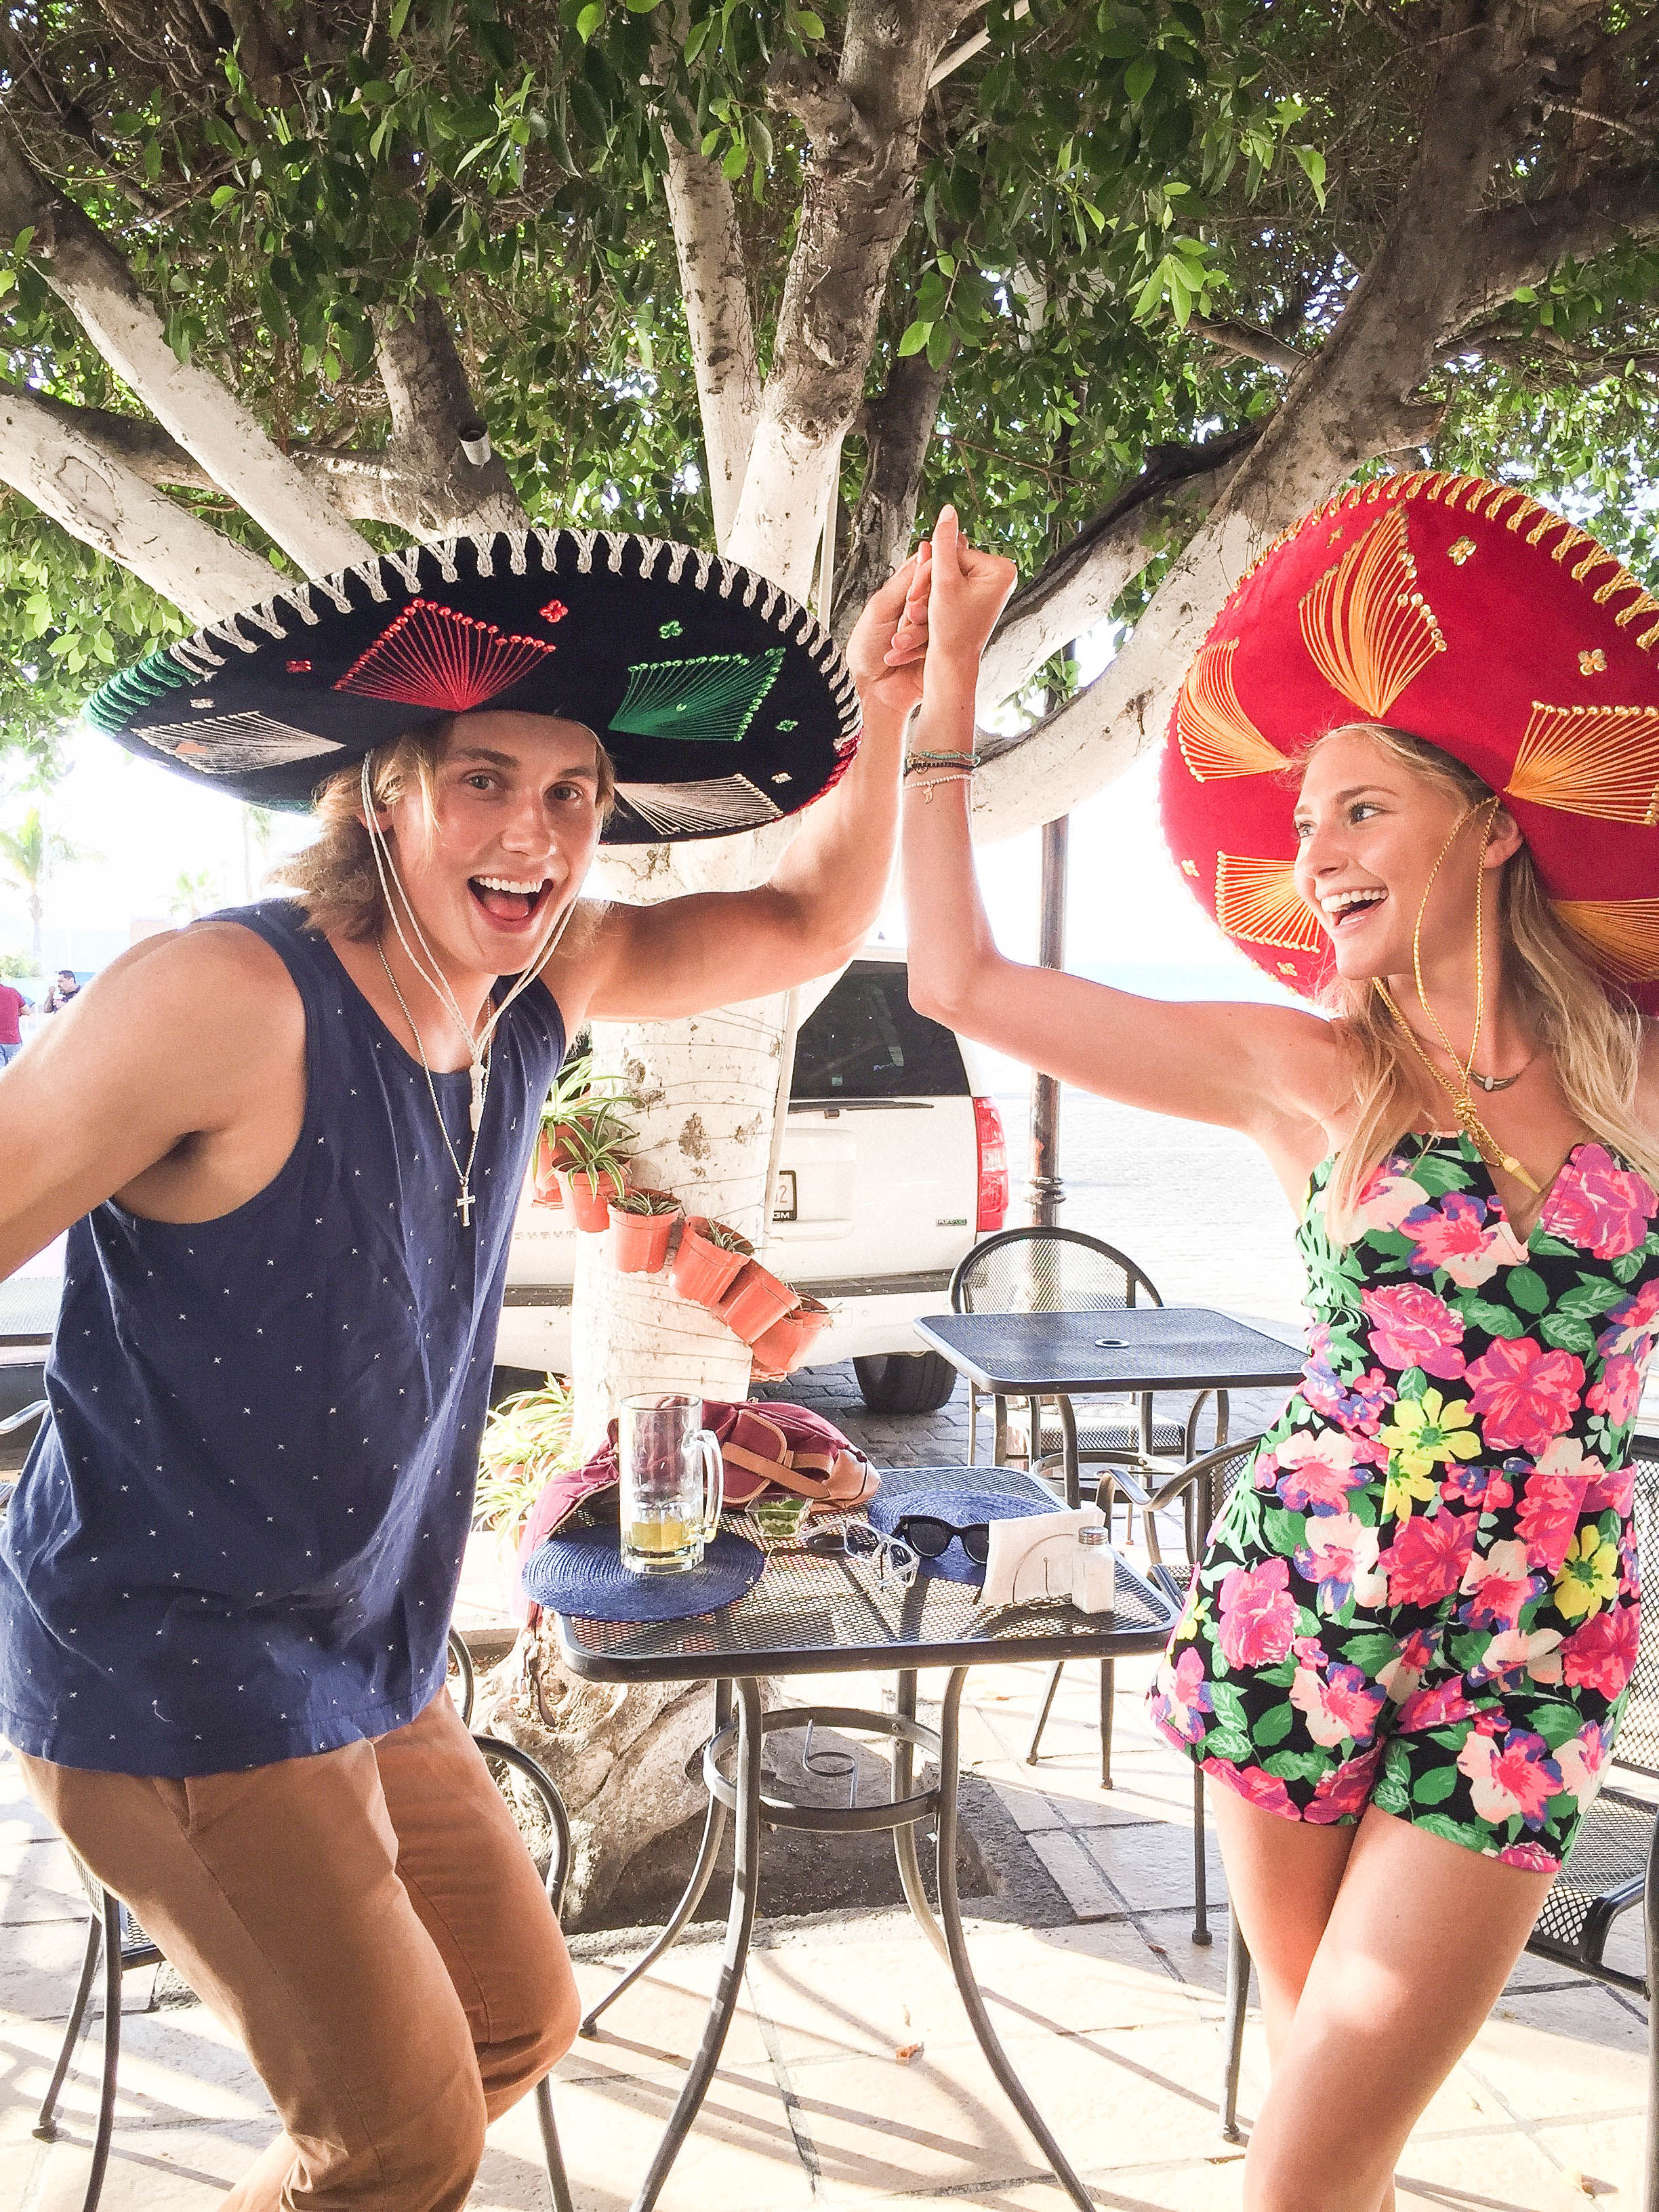 G and I had our own little fiesta in downtown with the locals sombreros